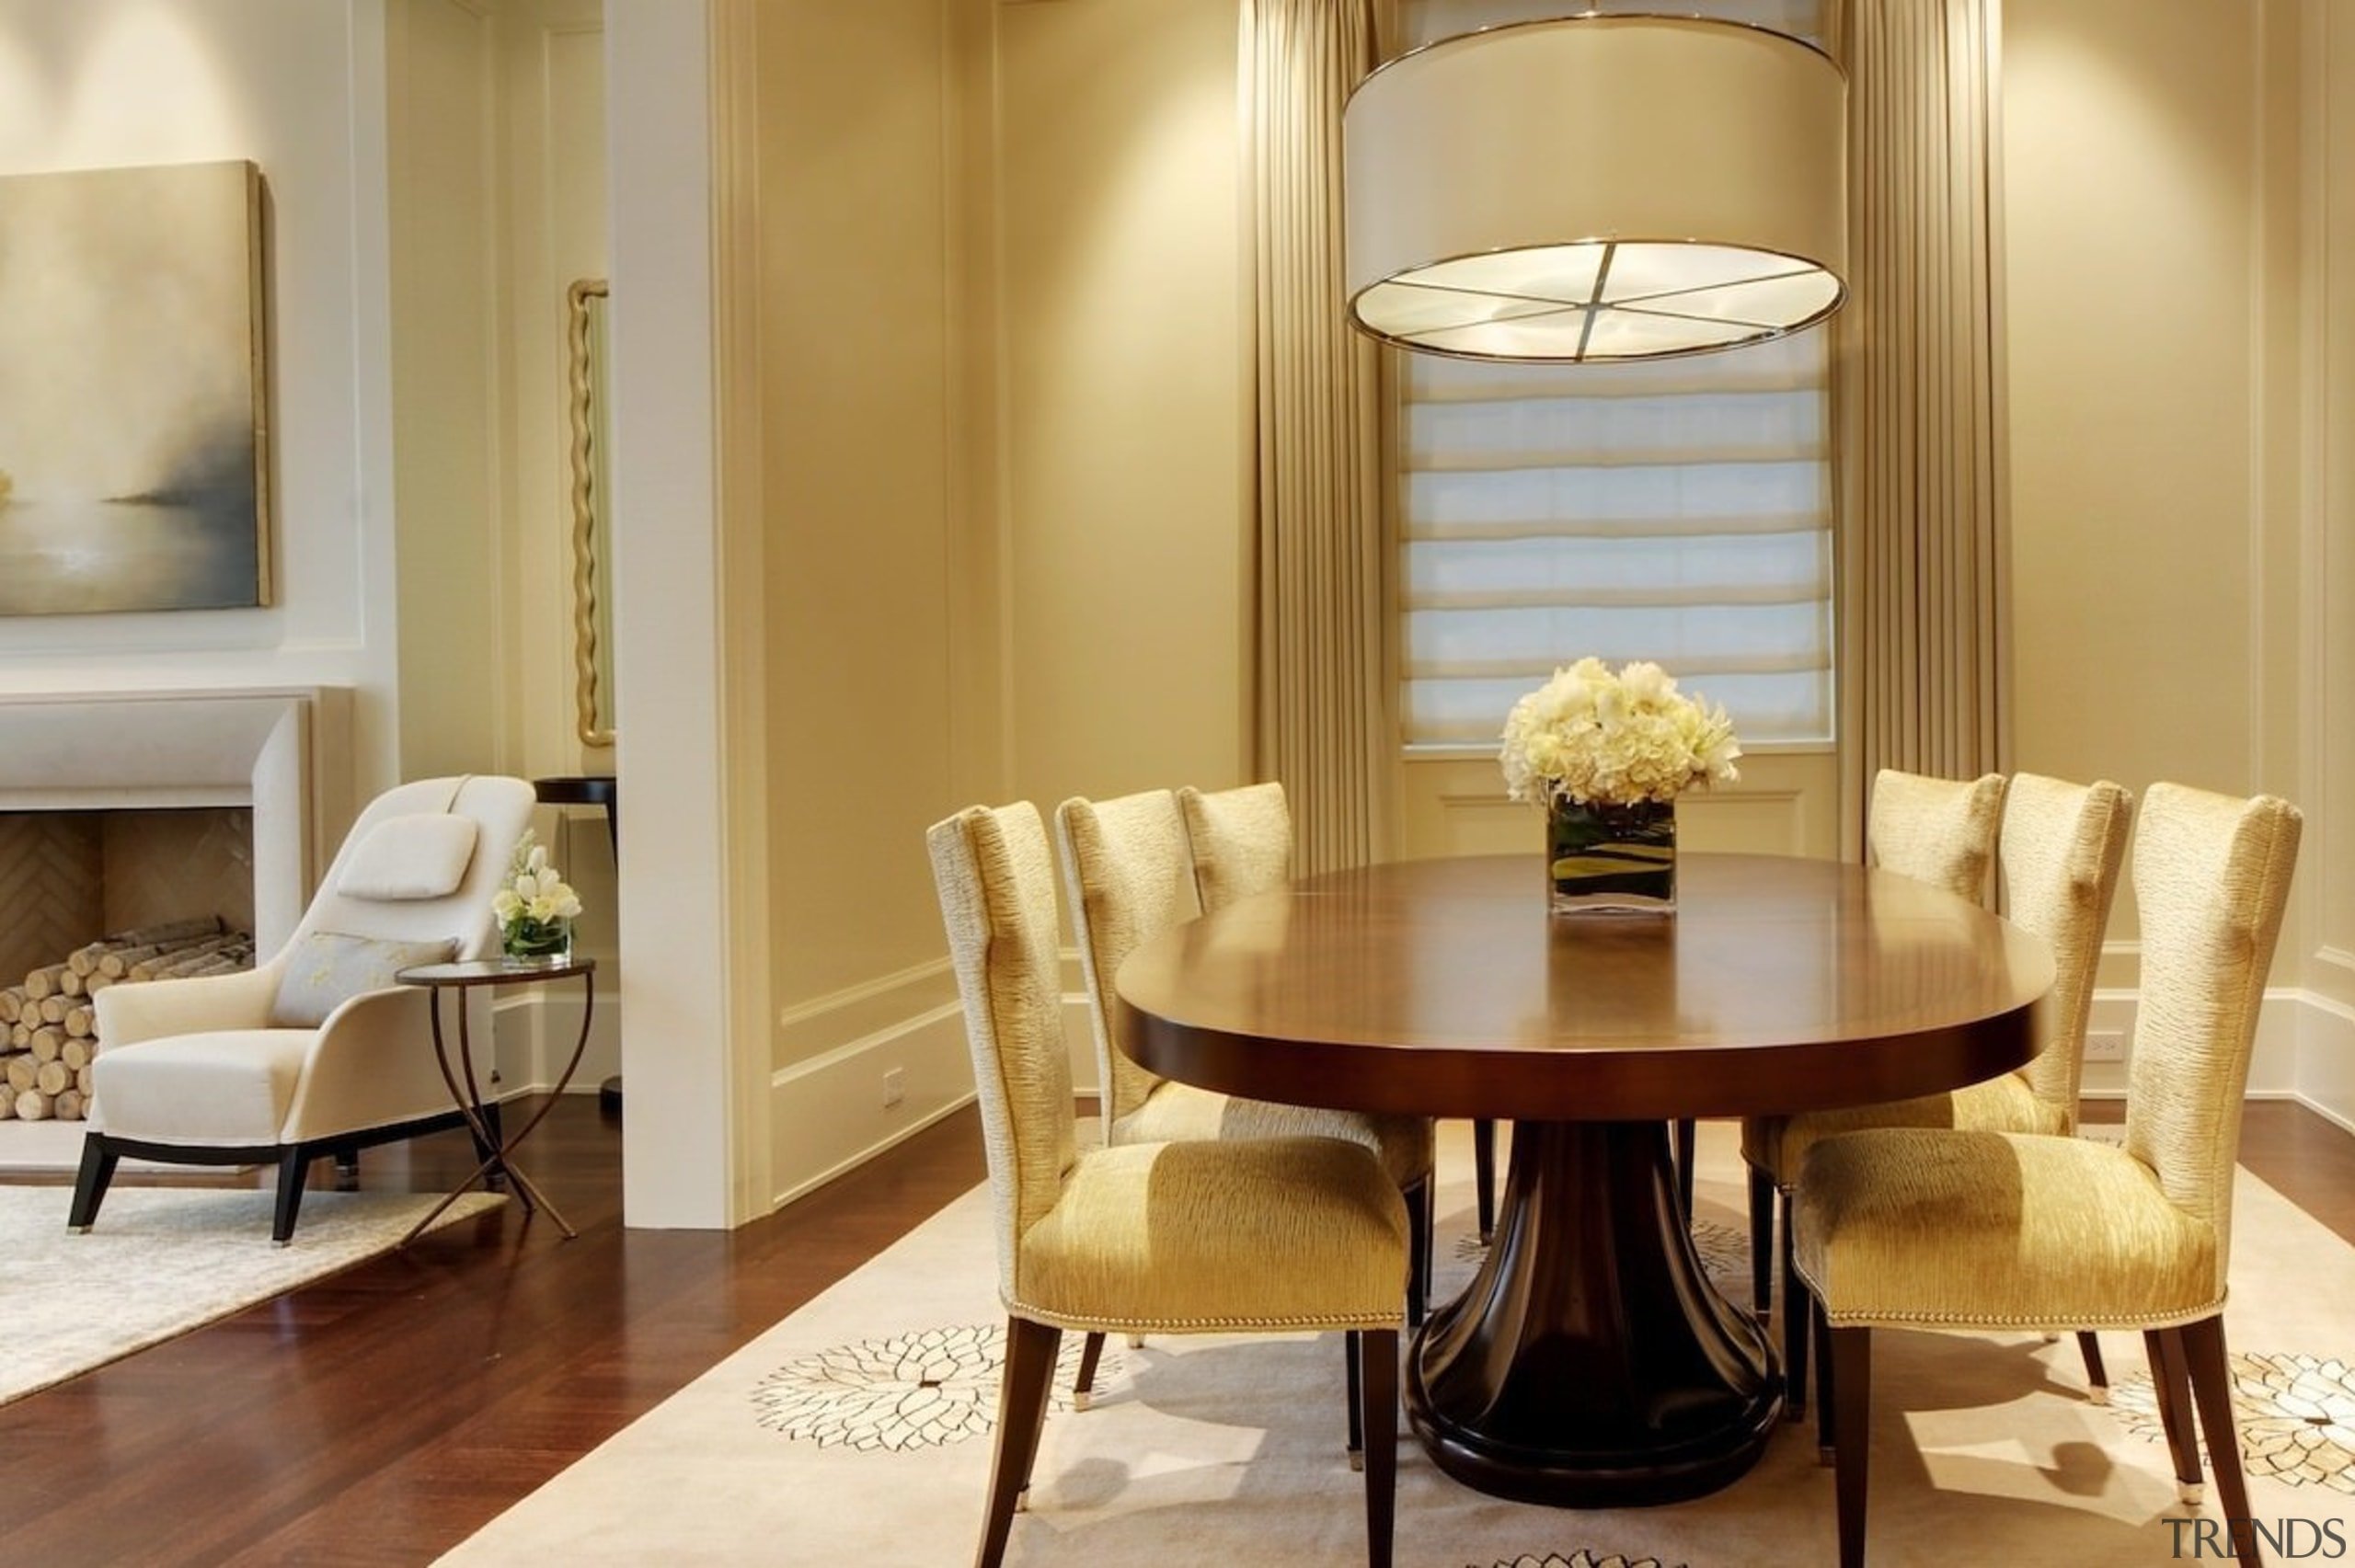 An expansive dining room opens out into the ceiling, chair, dining room, furniture, home, interior design, living room, room, suite, table, orange, brown